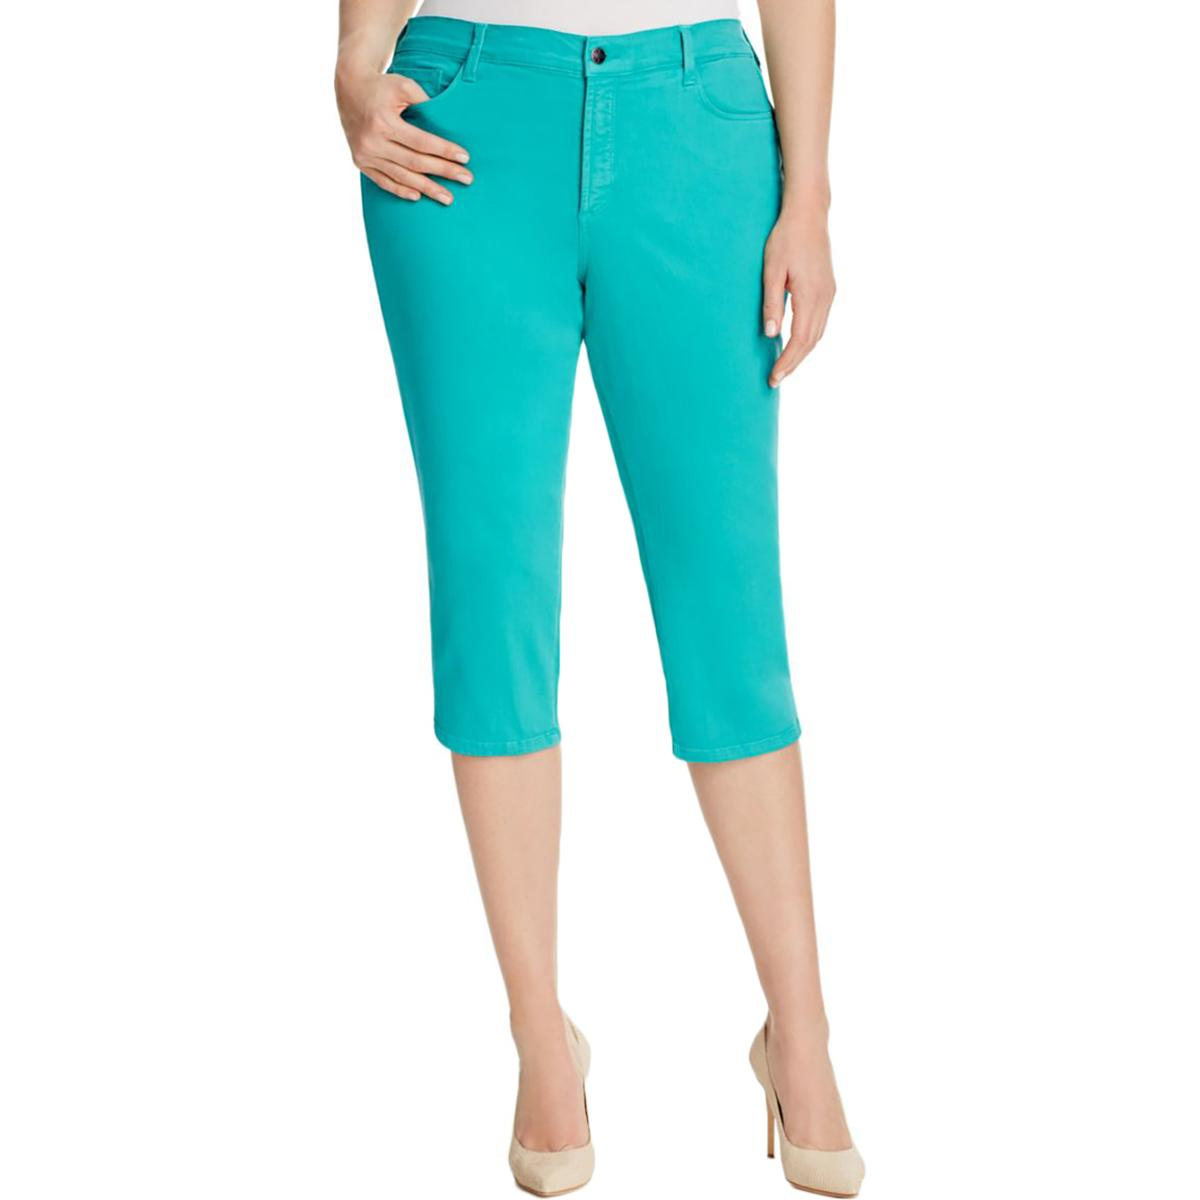 f8355922f67 Details about NYDJ Womens Ariel Slimming Fit High-Rise Straight Crop Jeans  Plus BHFO 2272